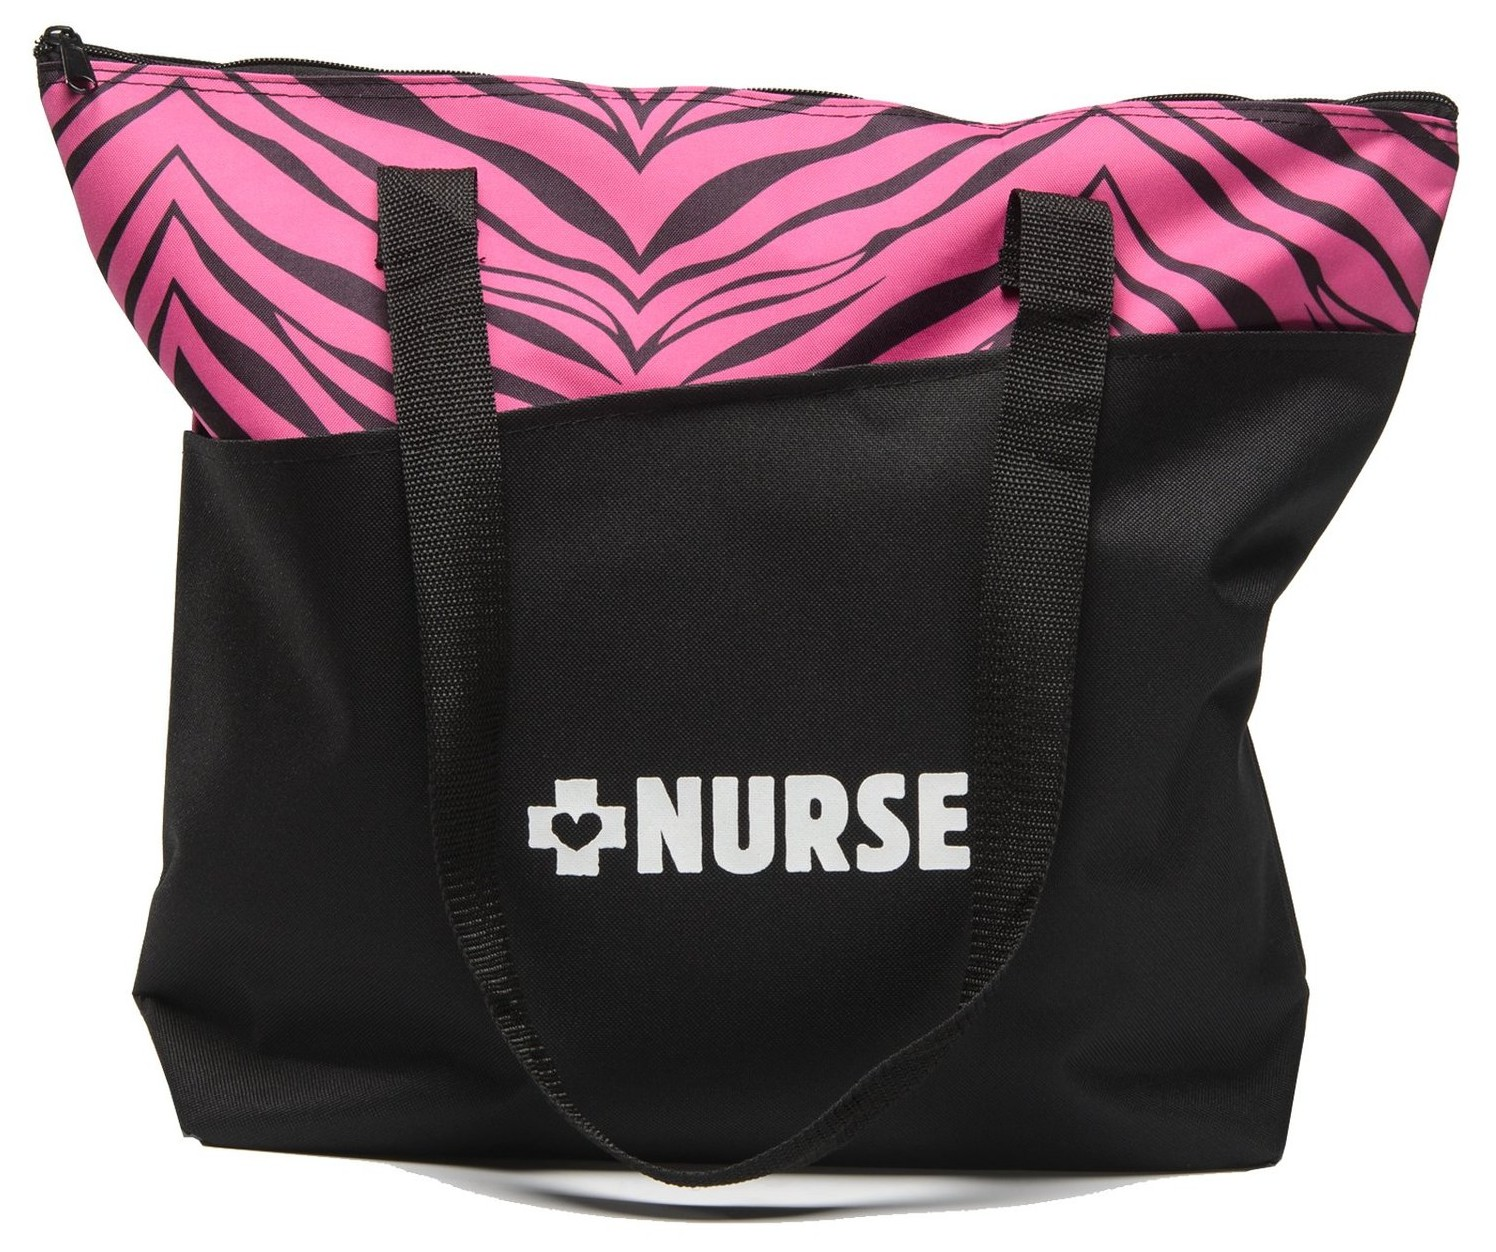 Medical Bags For Nursing Students